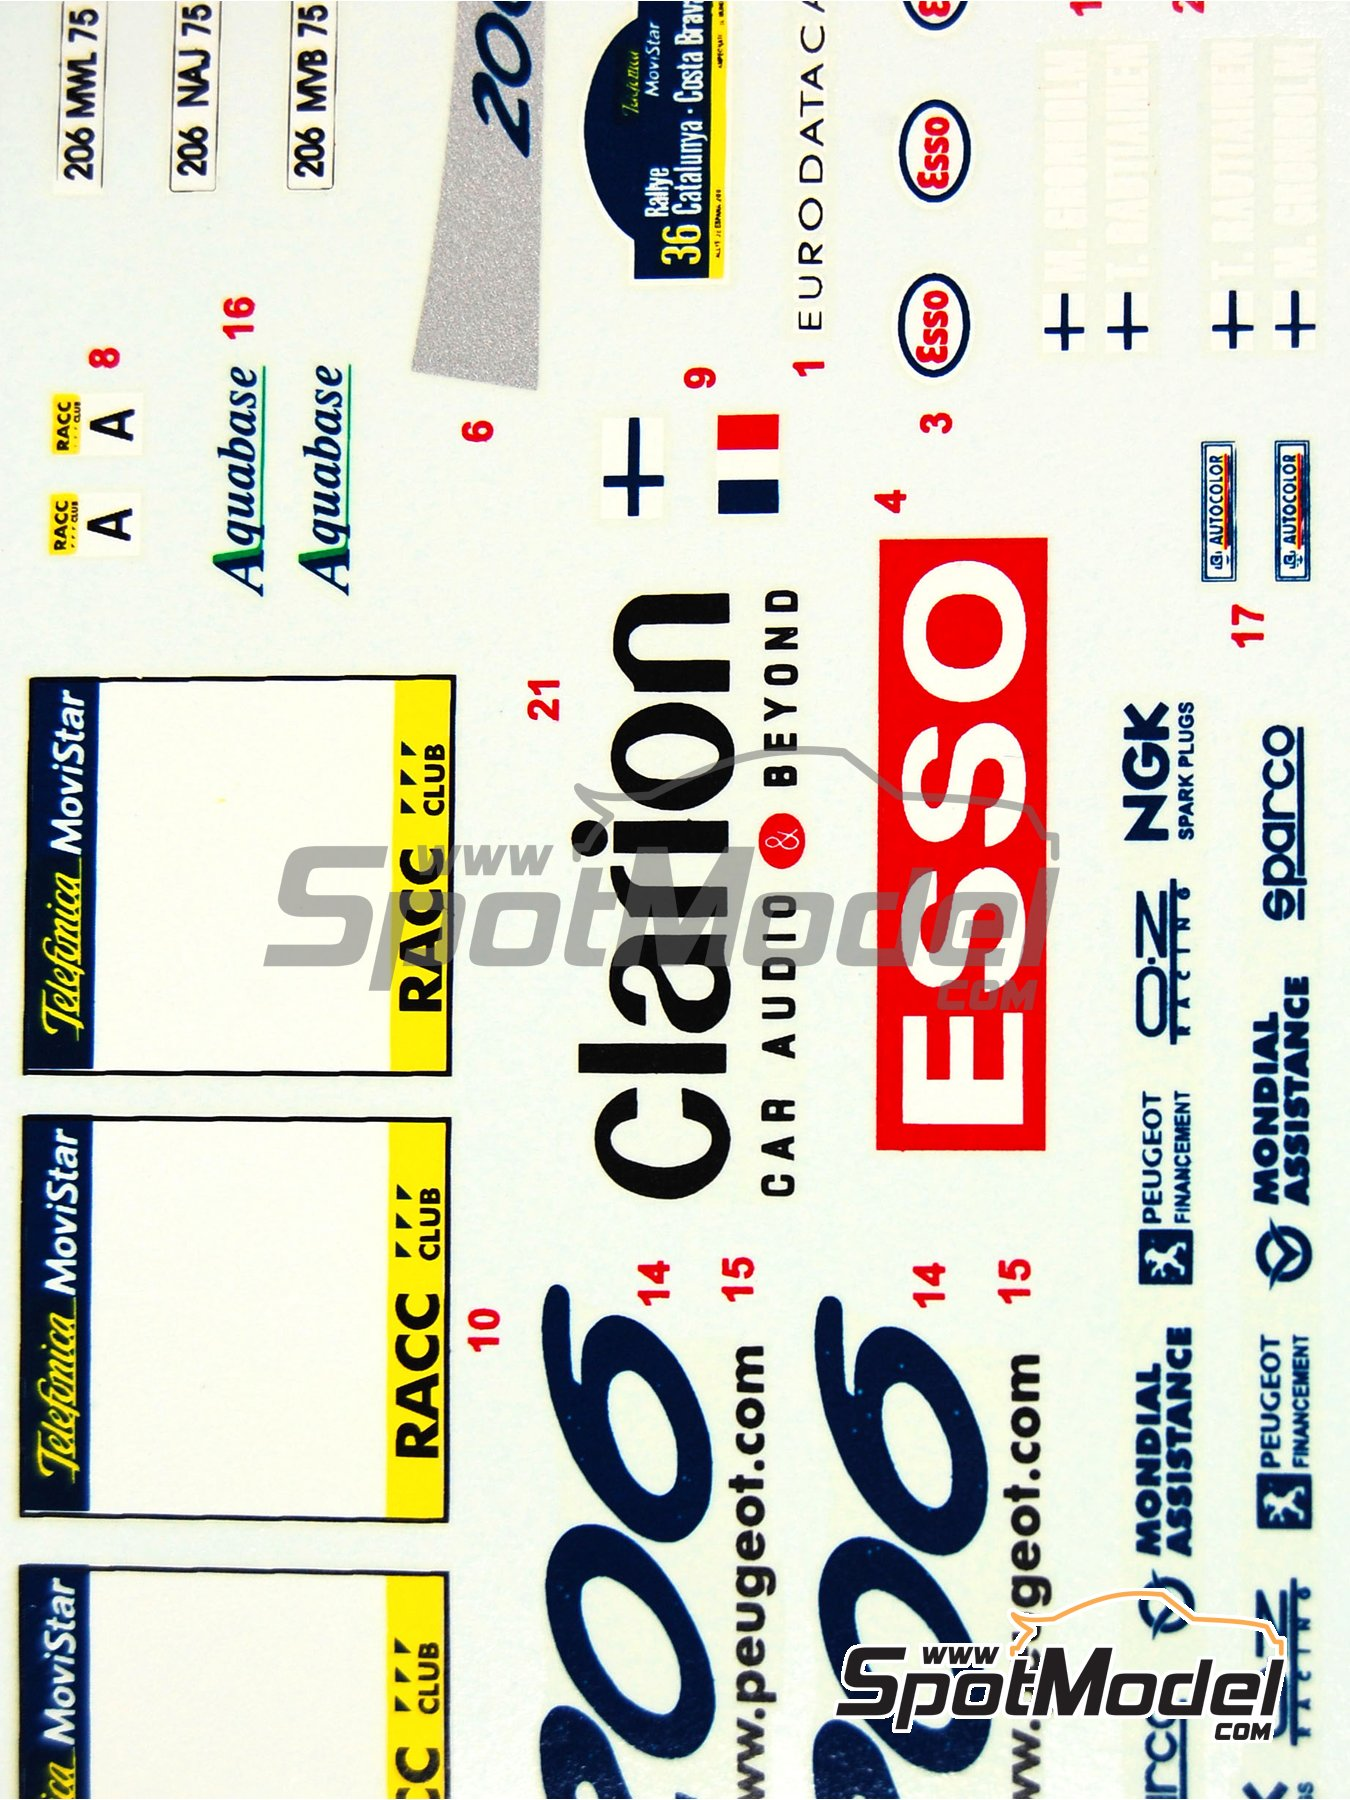 Peugeot 206 WRC Esso Ultron Clarion - Catalunya Costa Dorada RACC Rally 2000 | Decals in 1/24 scale manufactured by Reji Model (ref. REJI-031) image